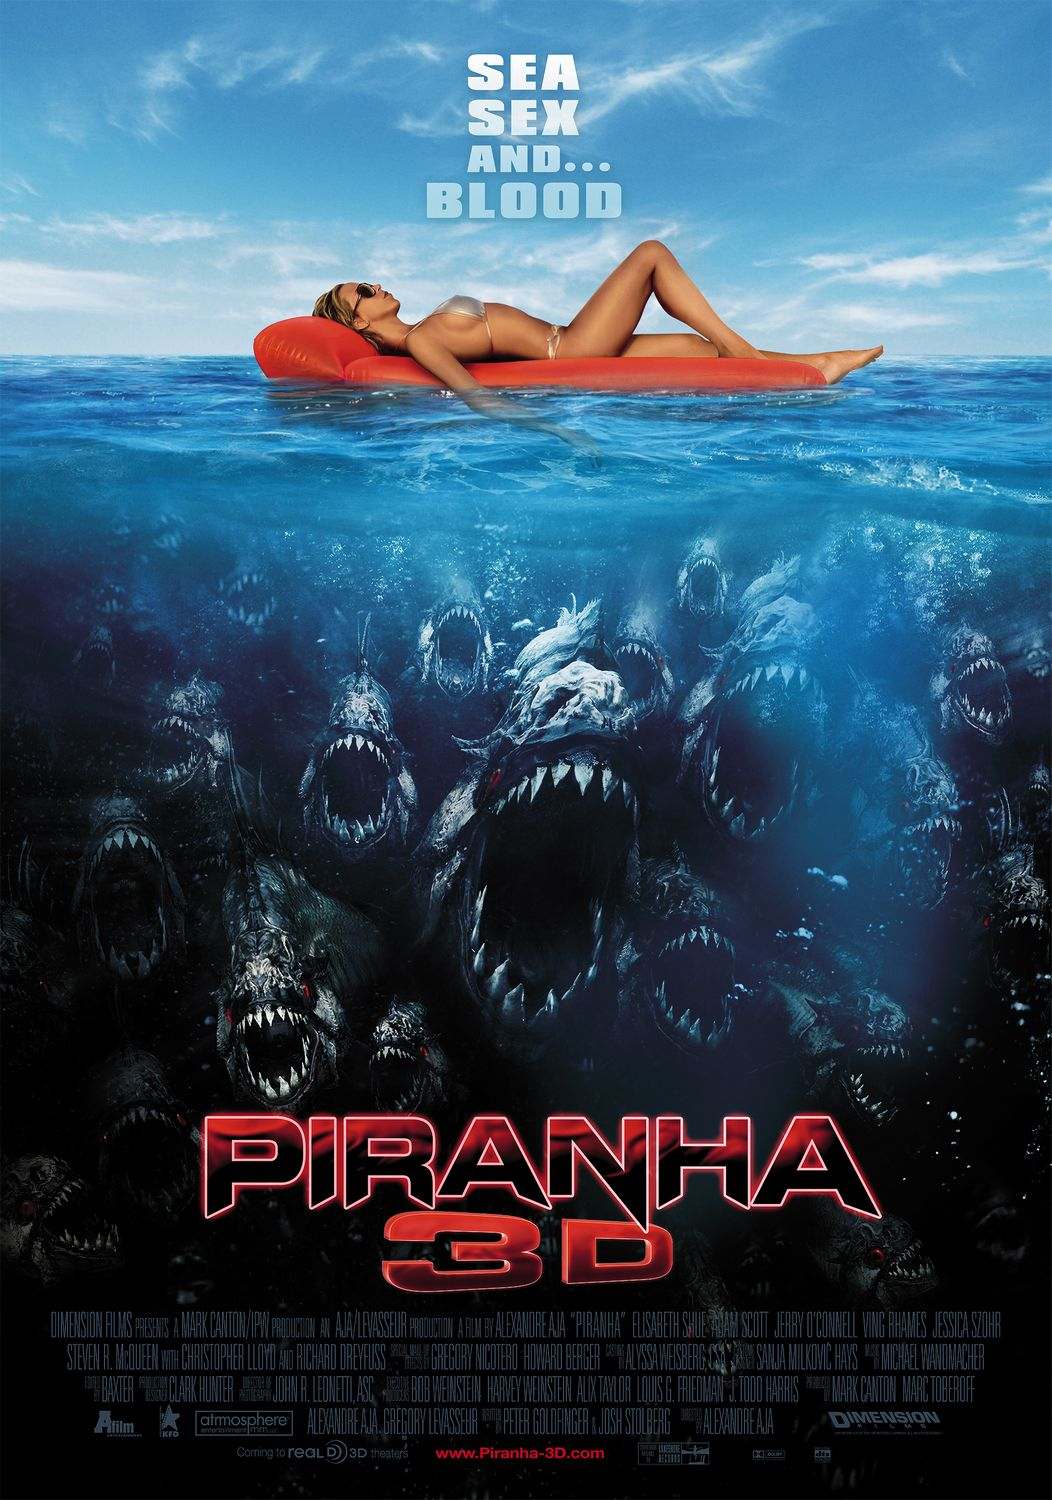 piranha 3d sea sex blood poster12 talk during sex. Credit: Getty Images